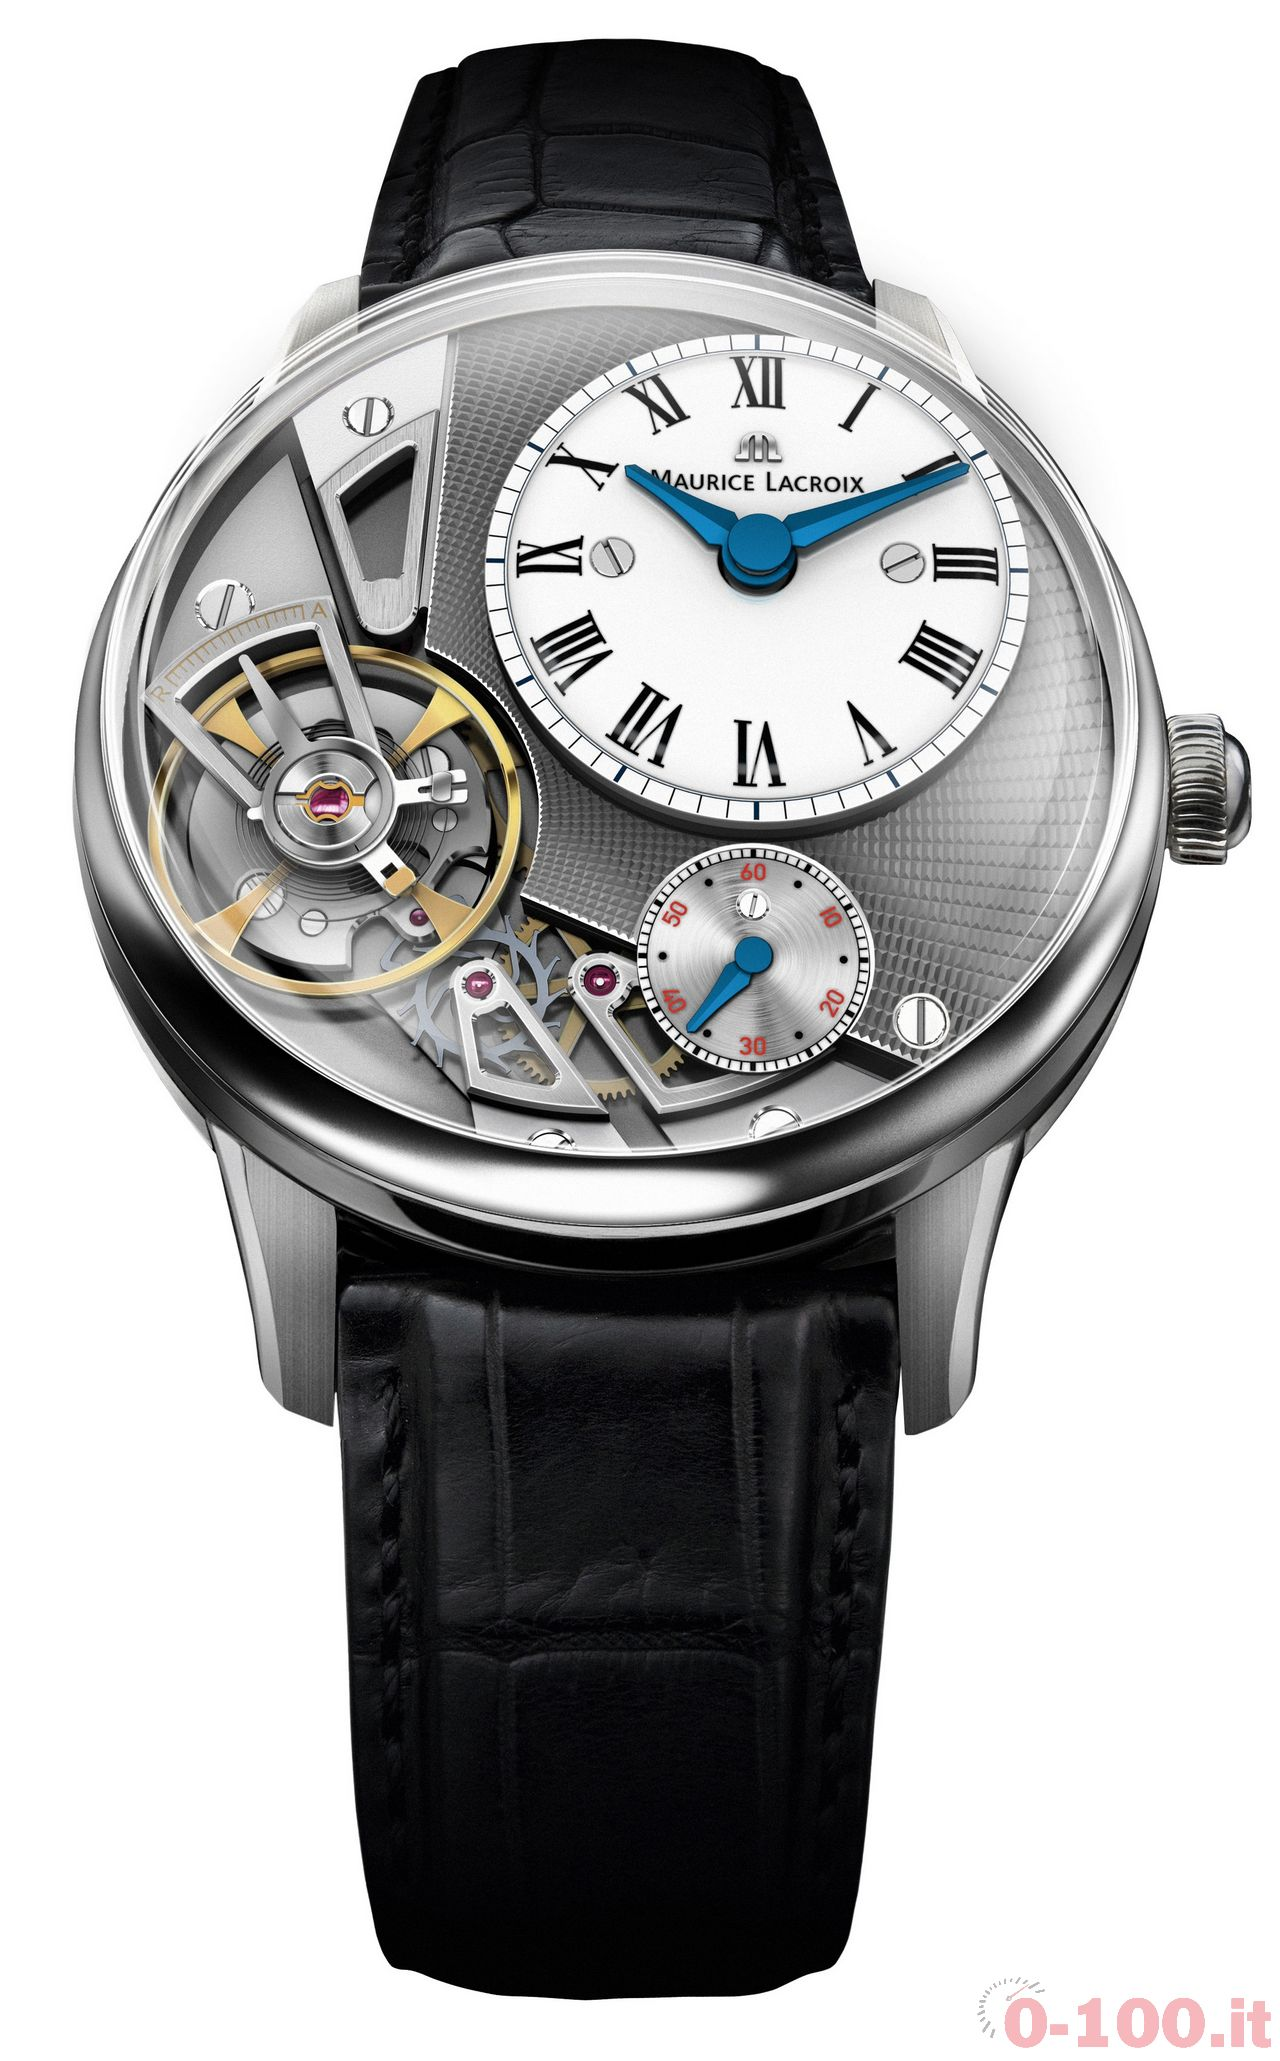 Baselworld-2014-Maurice-Lacroix-Masterpiece-Gravity _0-1005